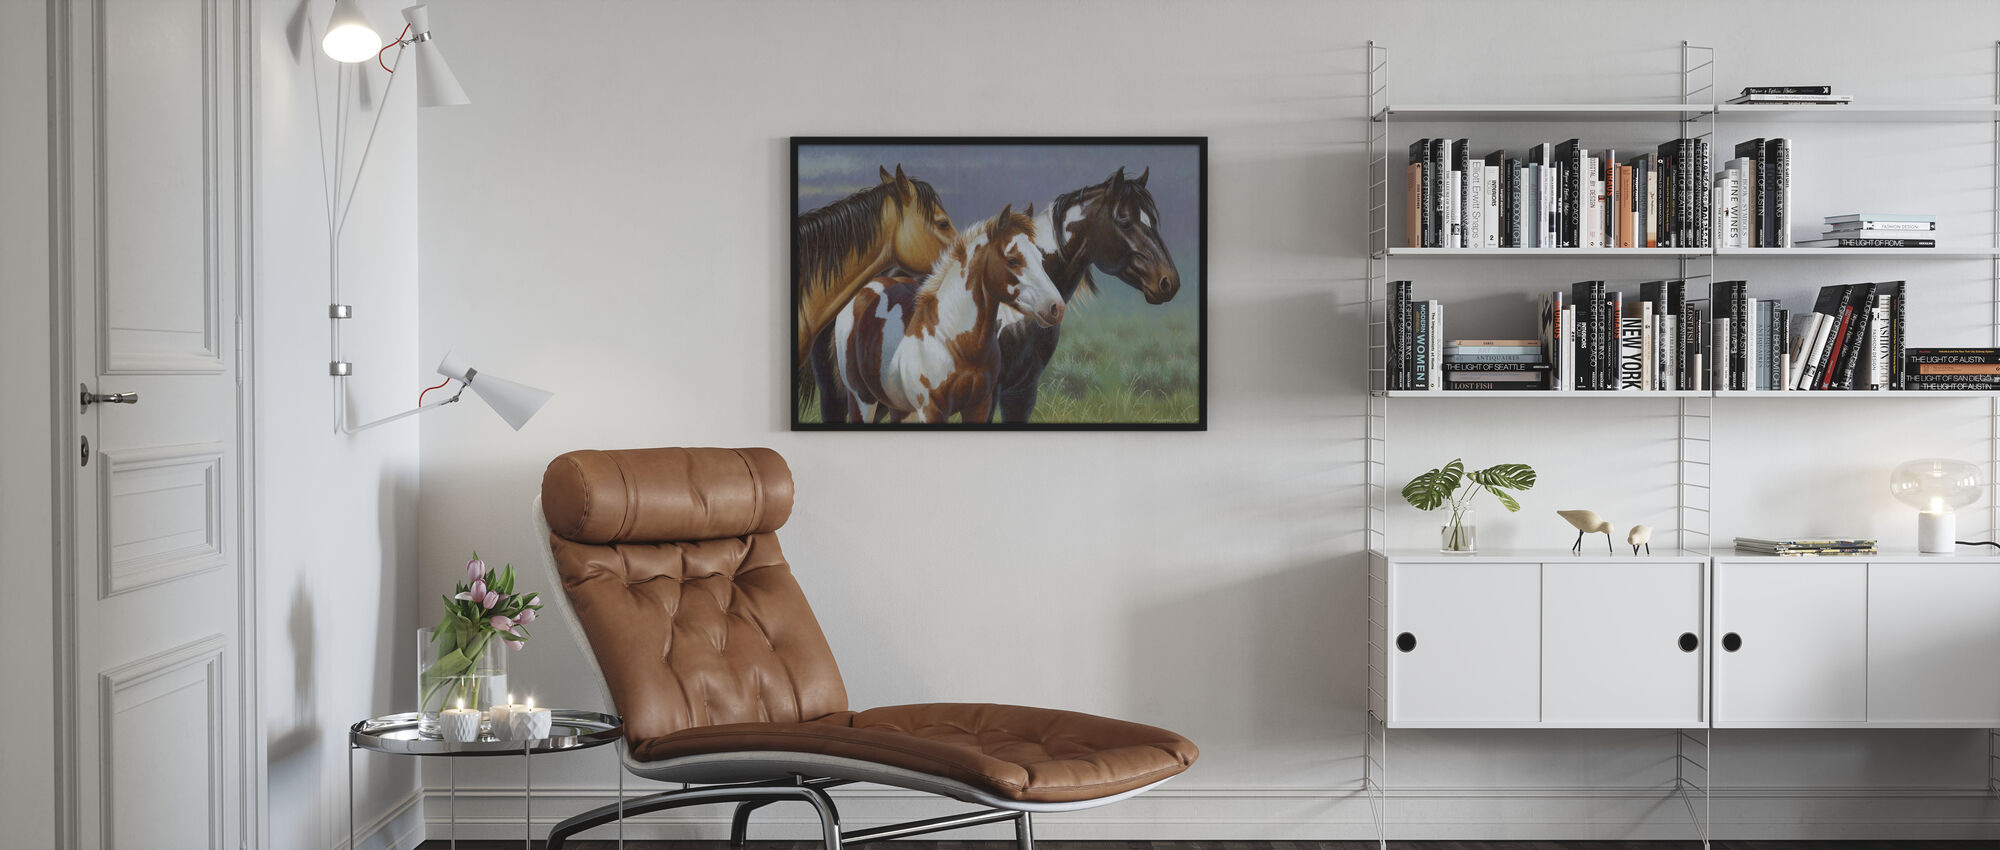 Paint Horse and Foal - Poster - Living Room